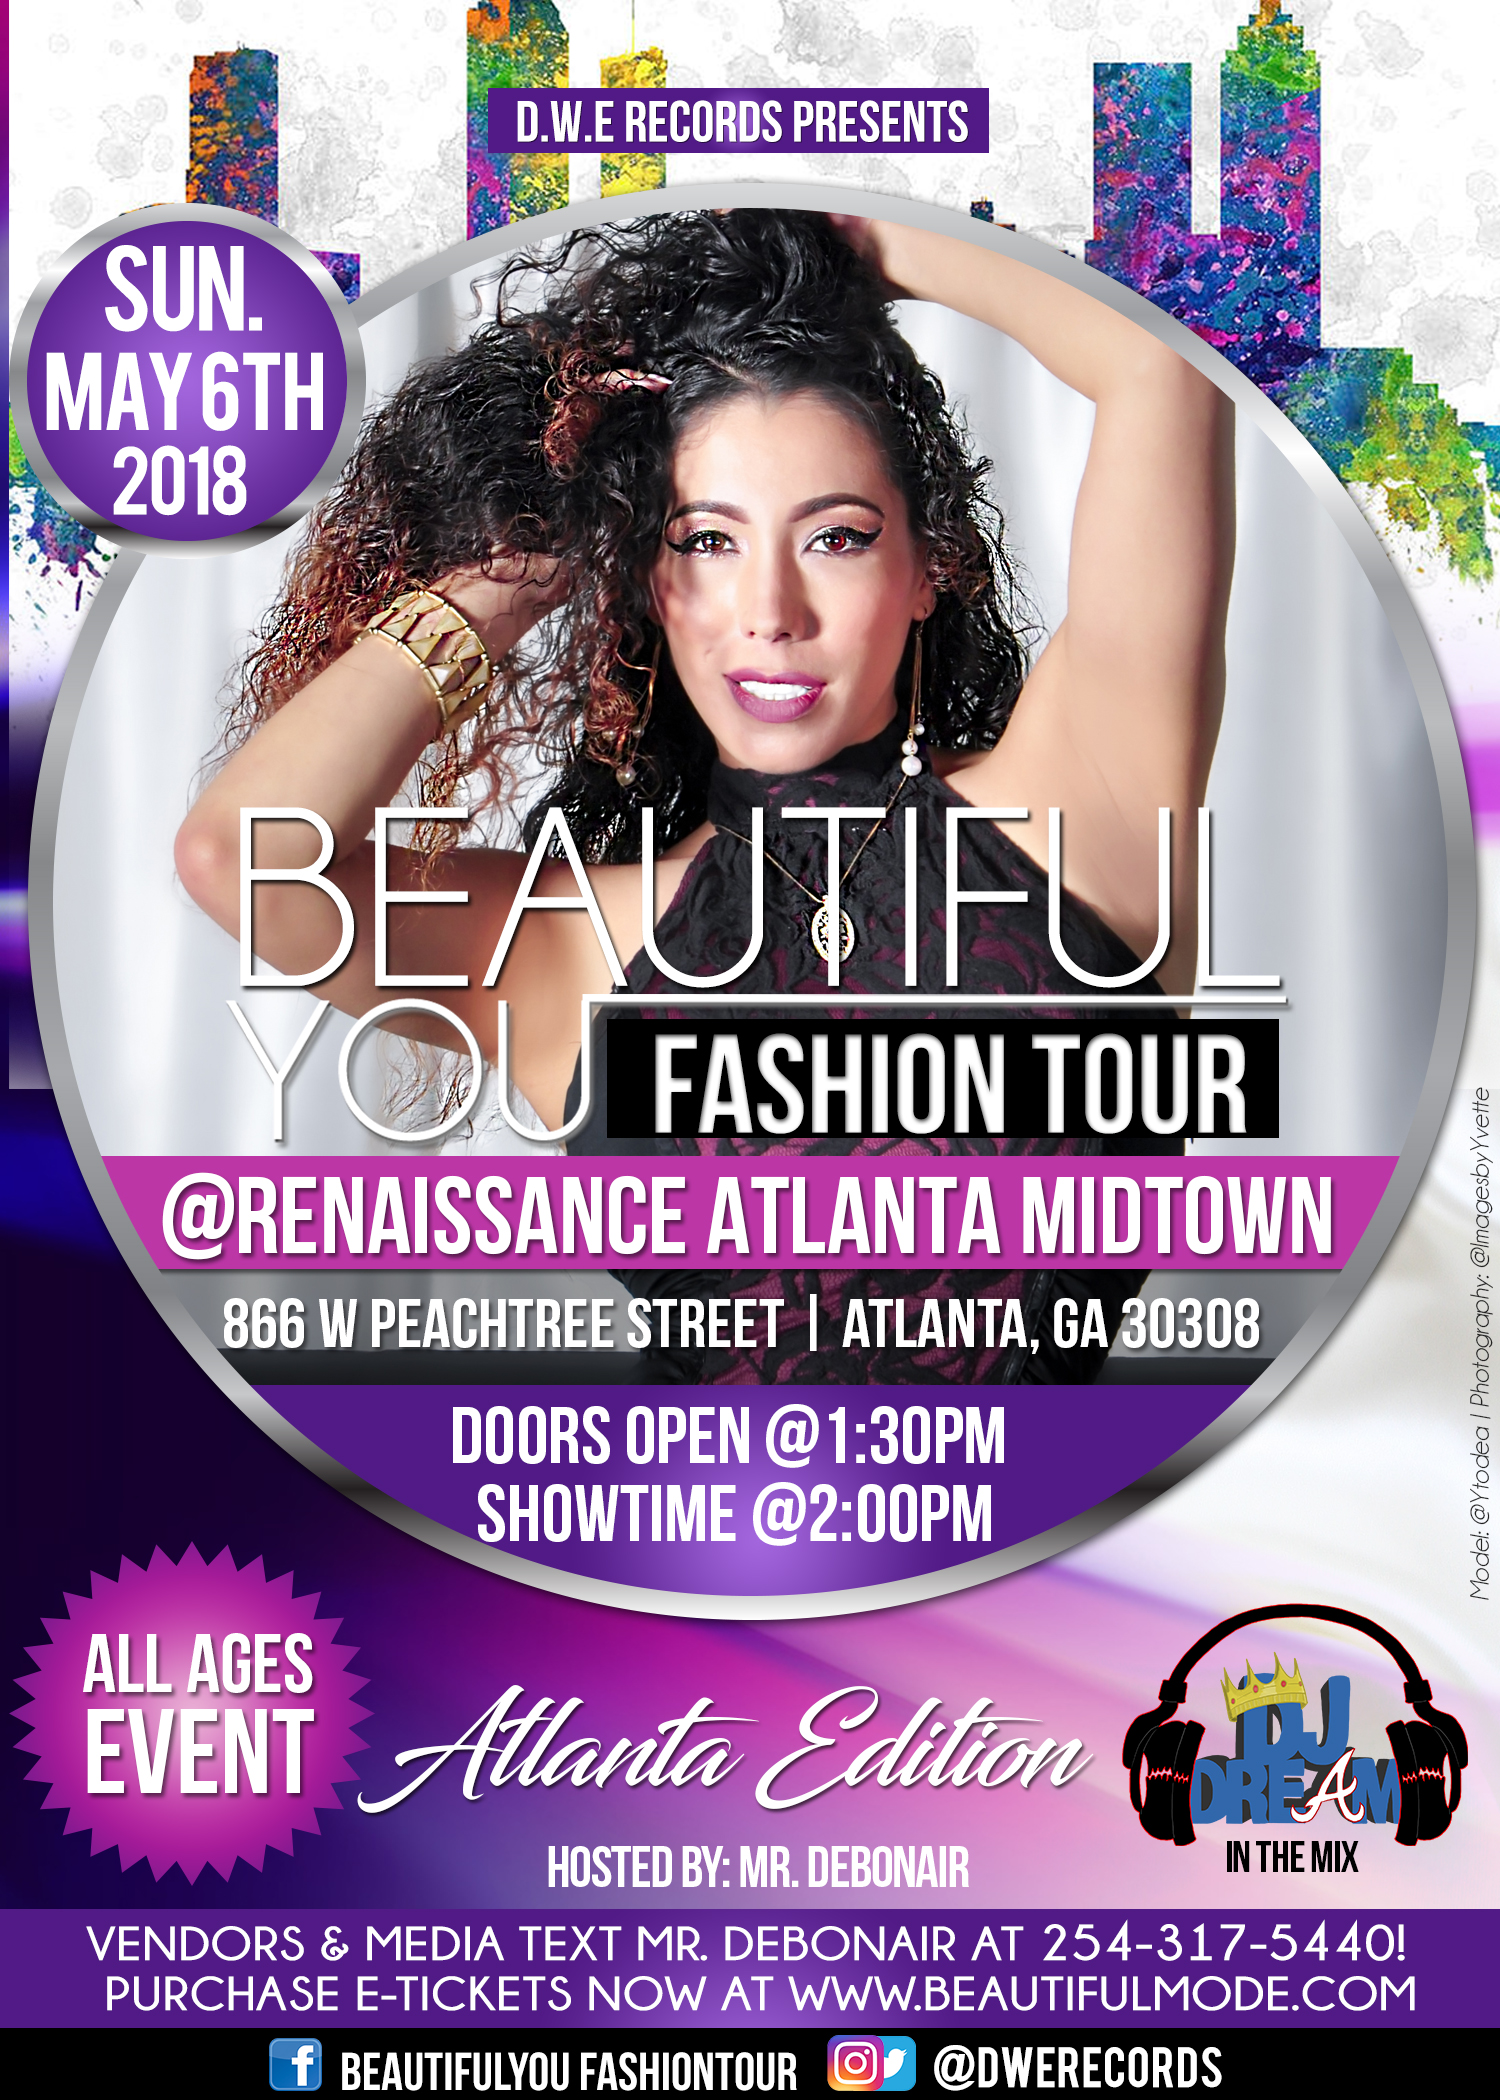 Atlanta, GA</a><br> by <a href='/profile/Mr-Debonair/'>Mr. Debonair</a>